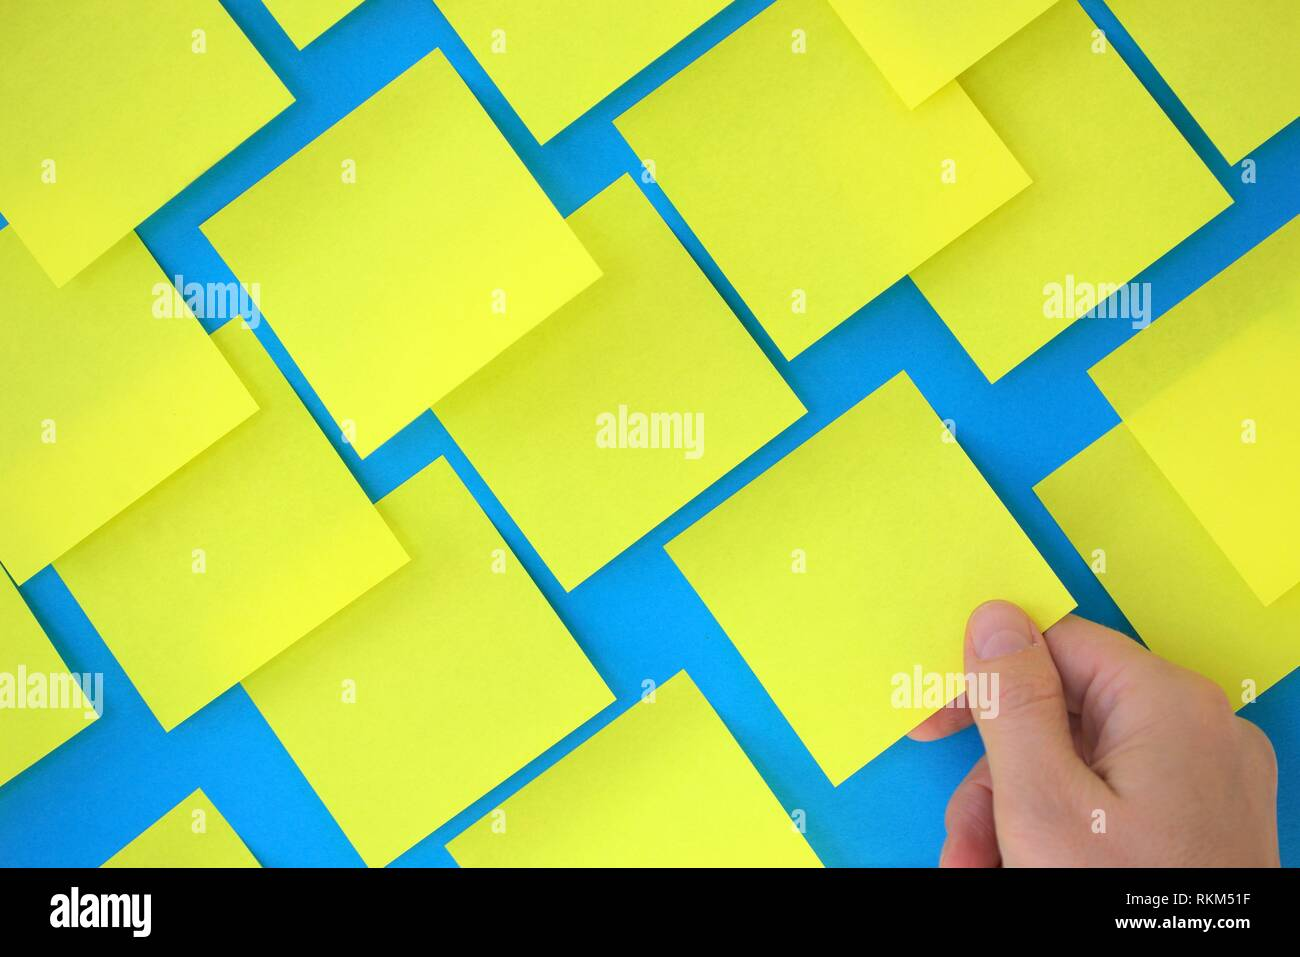 Hand holding post-it note on blue board. - Stock Image